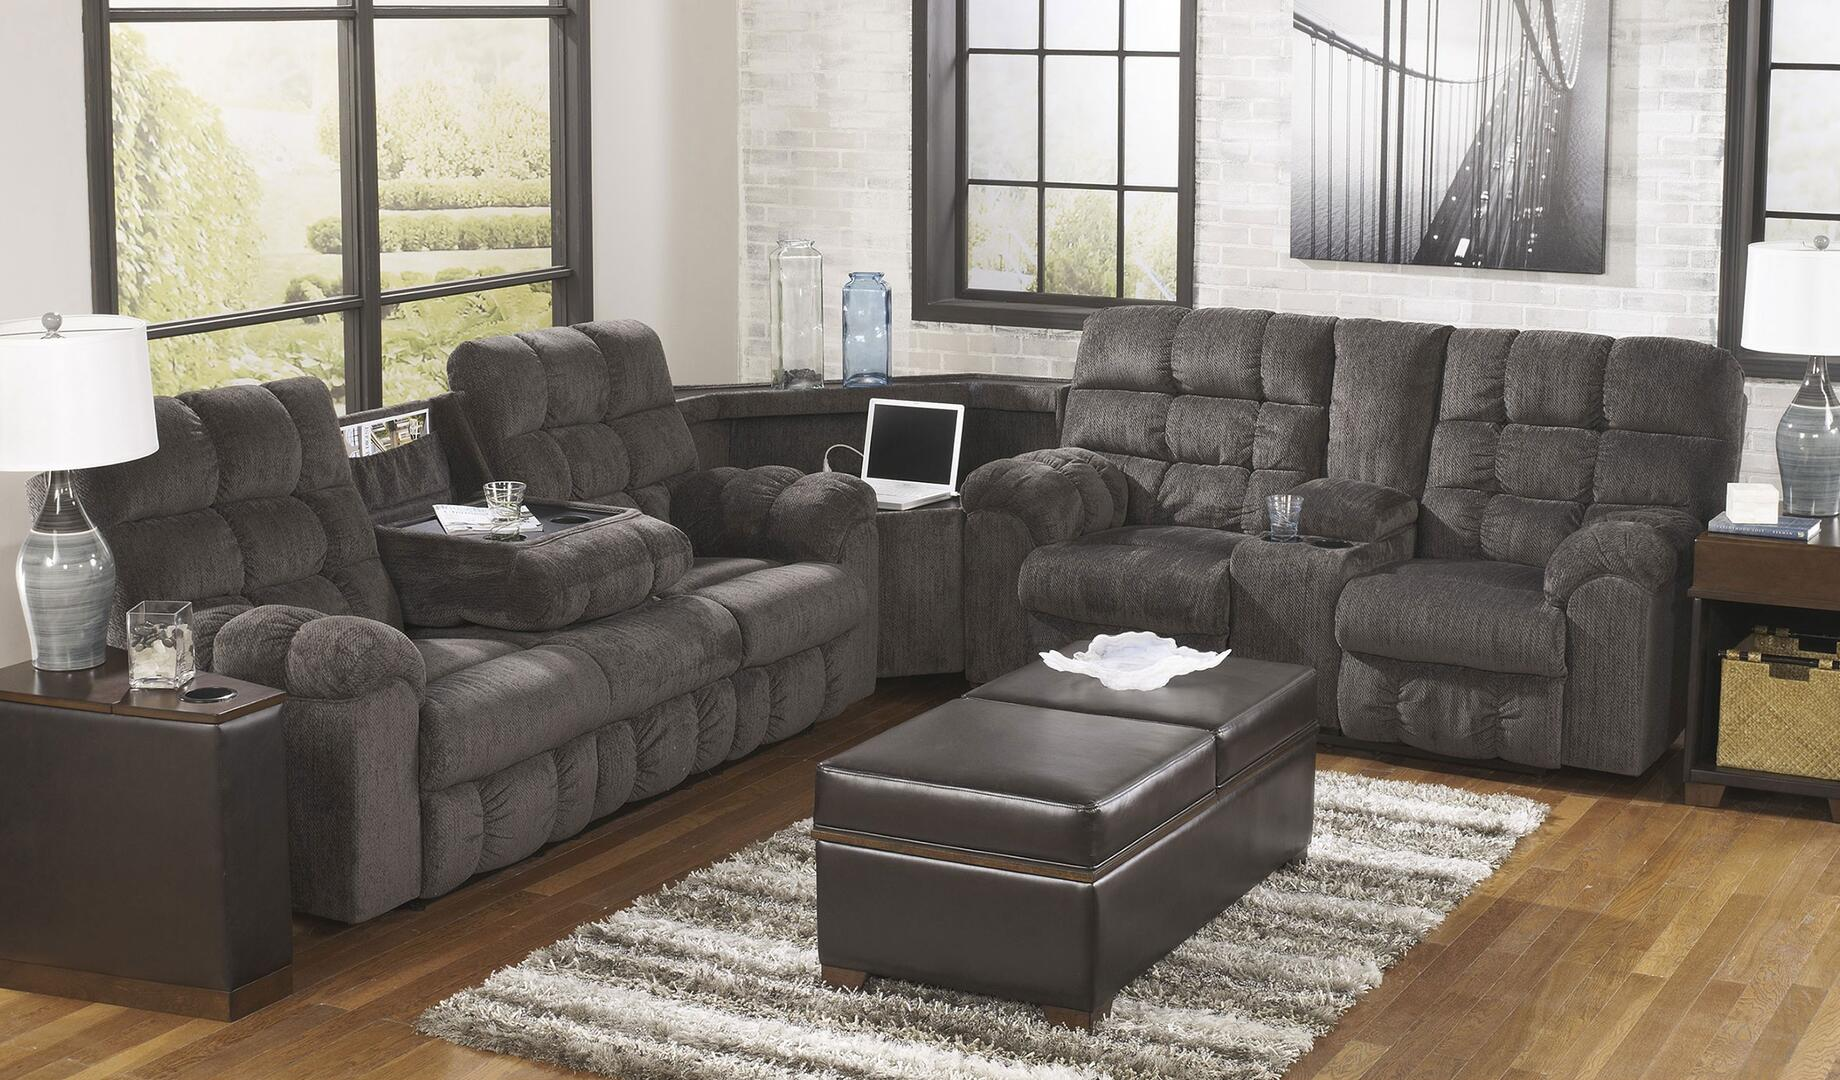 Signature design by ashley 58300set acieona living room sets appliances connection for The living room drop in center